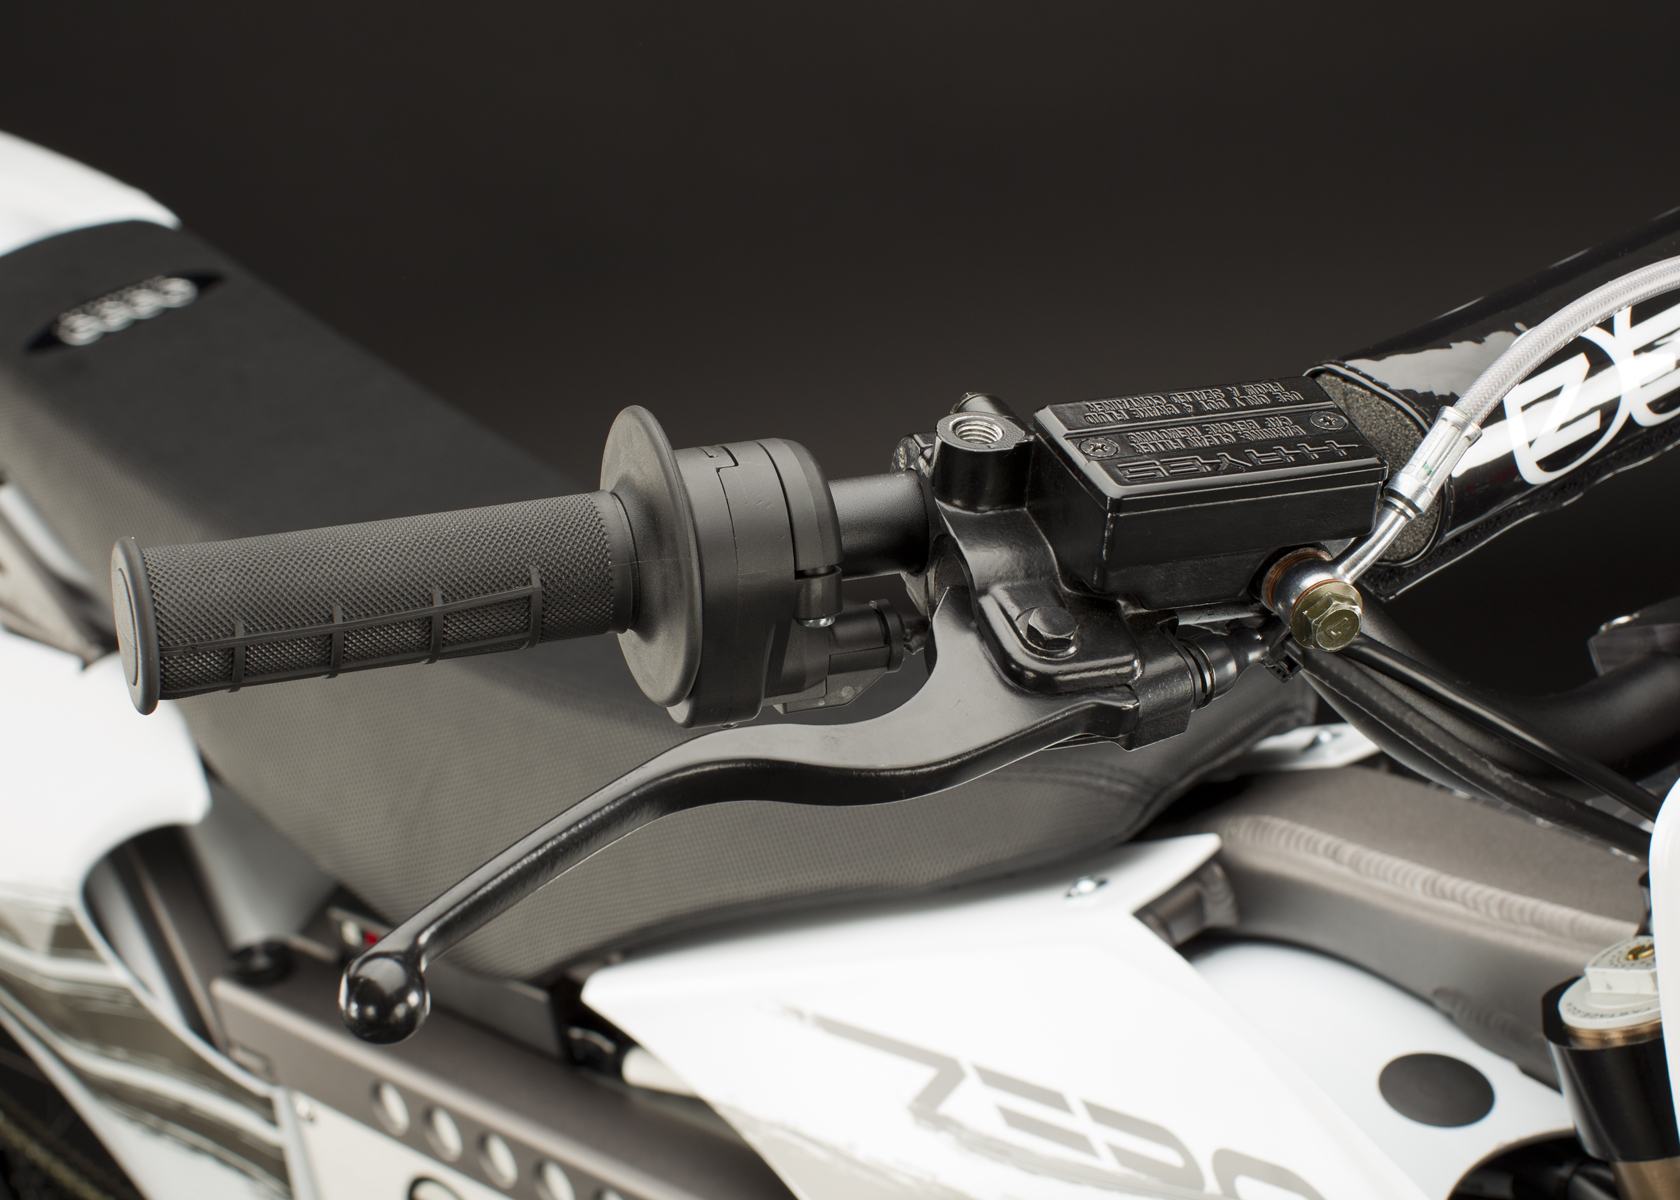 2011 Zero X Electric Motorcycle: Front Brake Hand